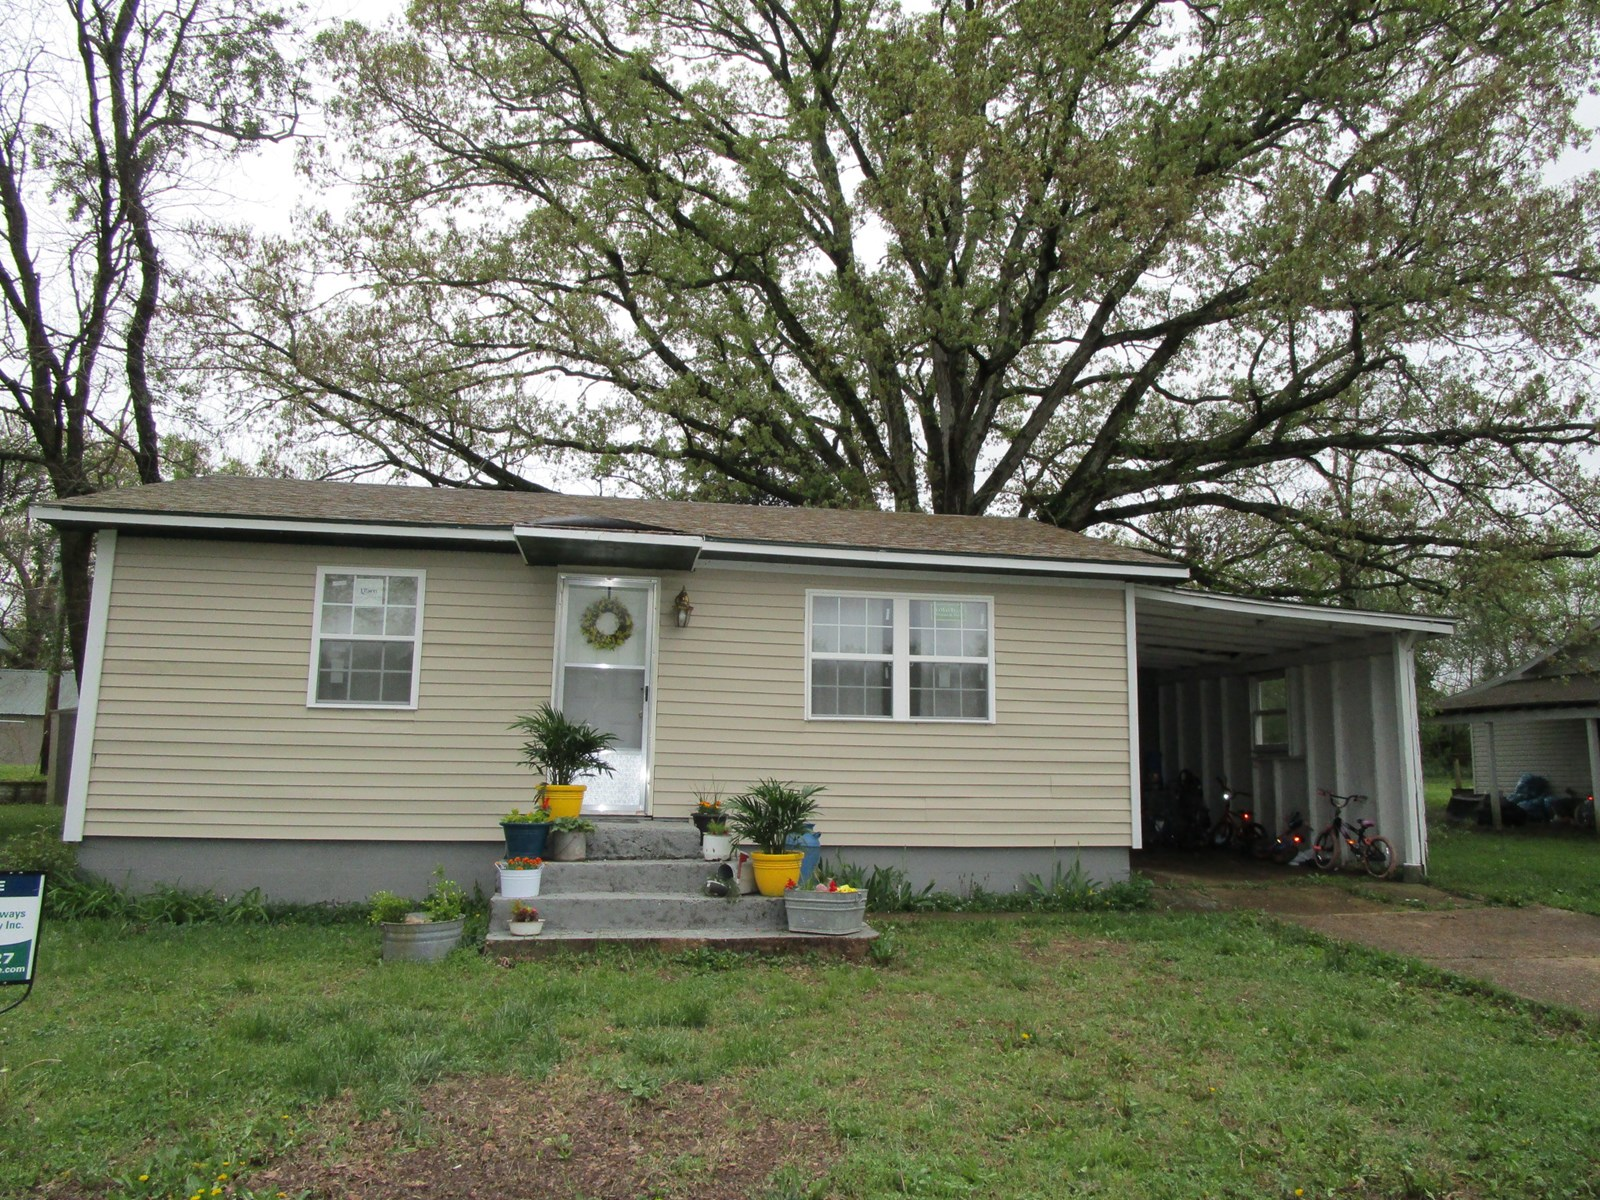 House for Sale in Town in Southern Missouri